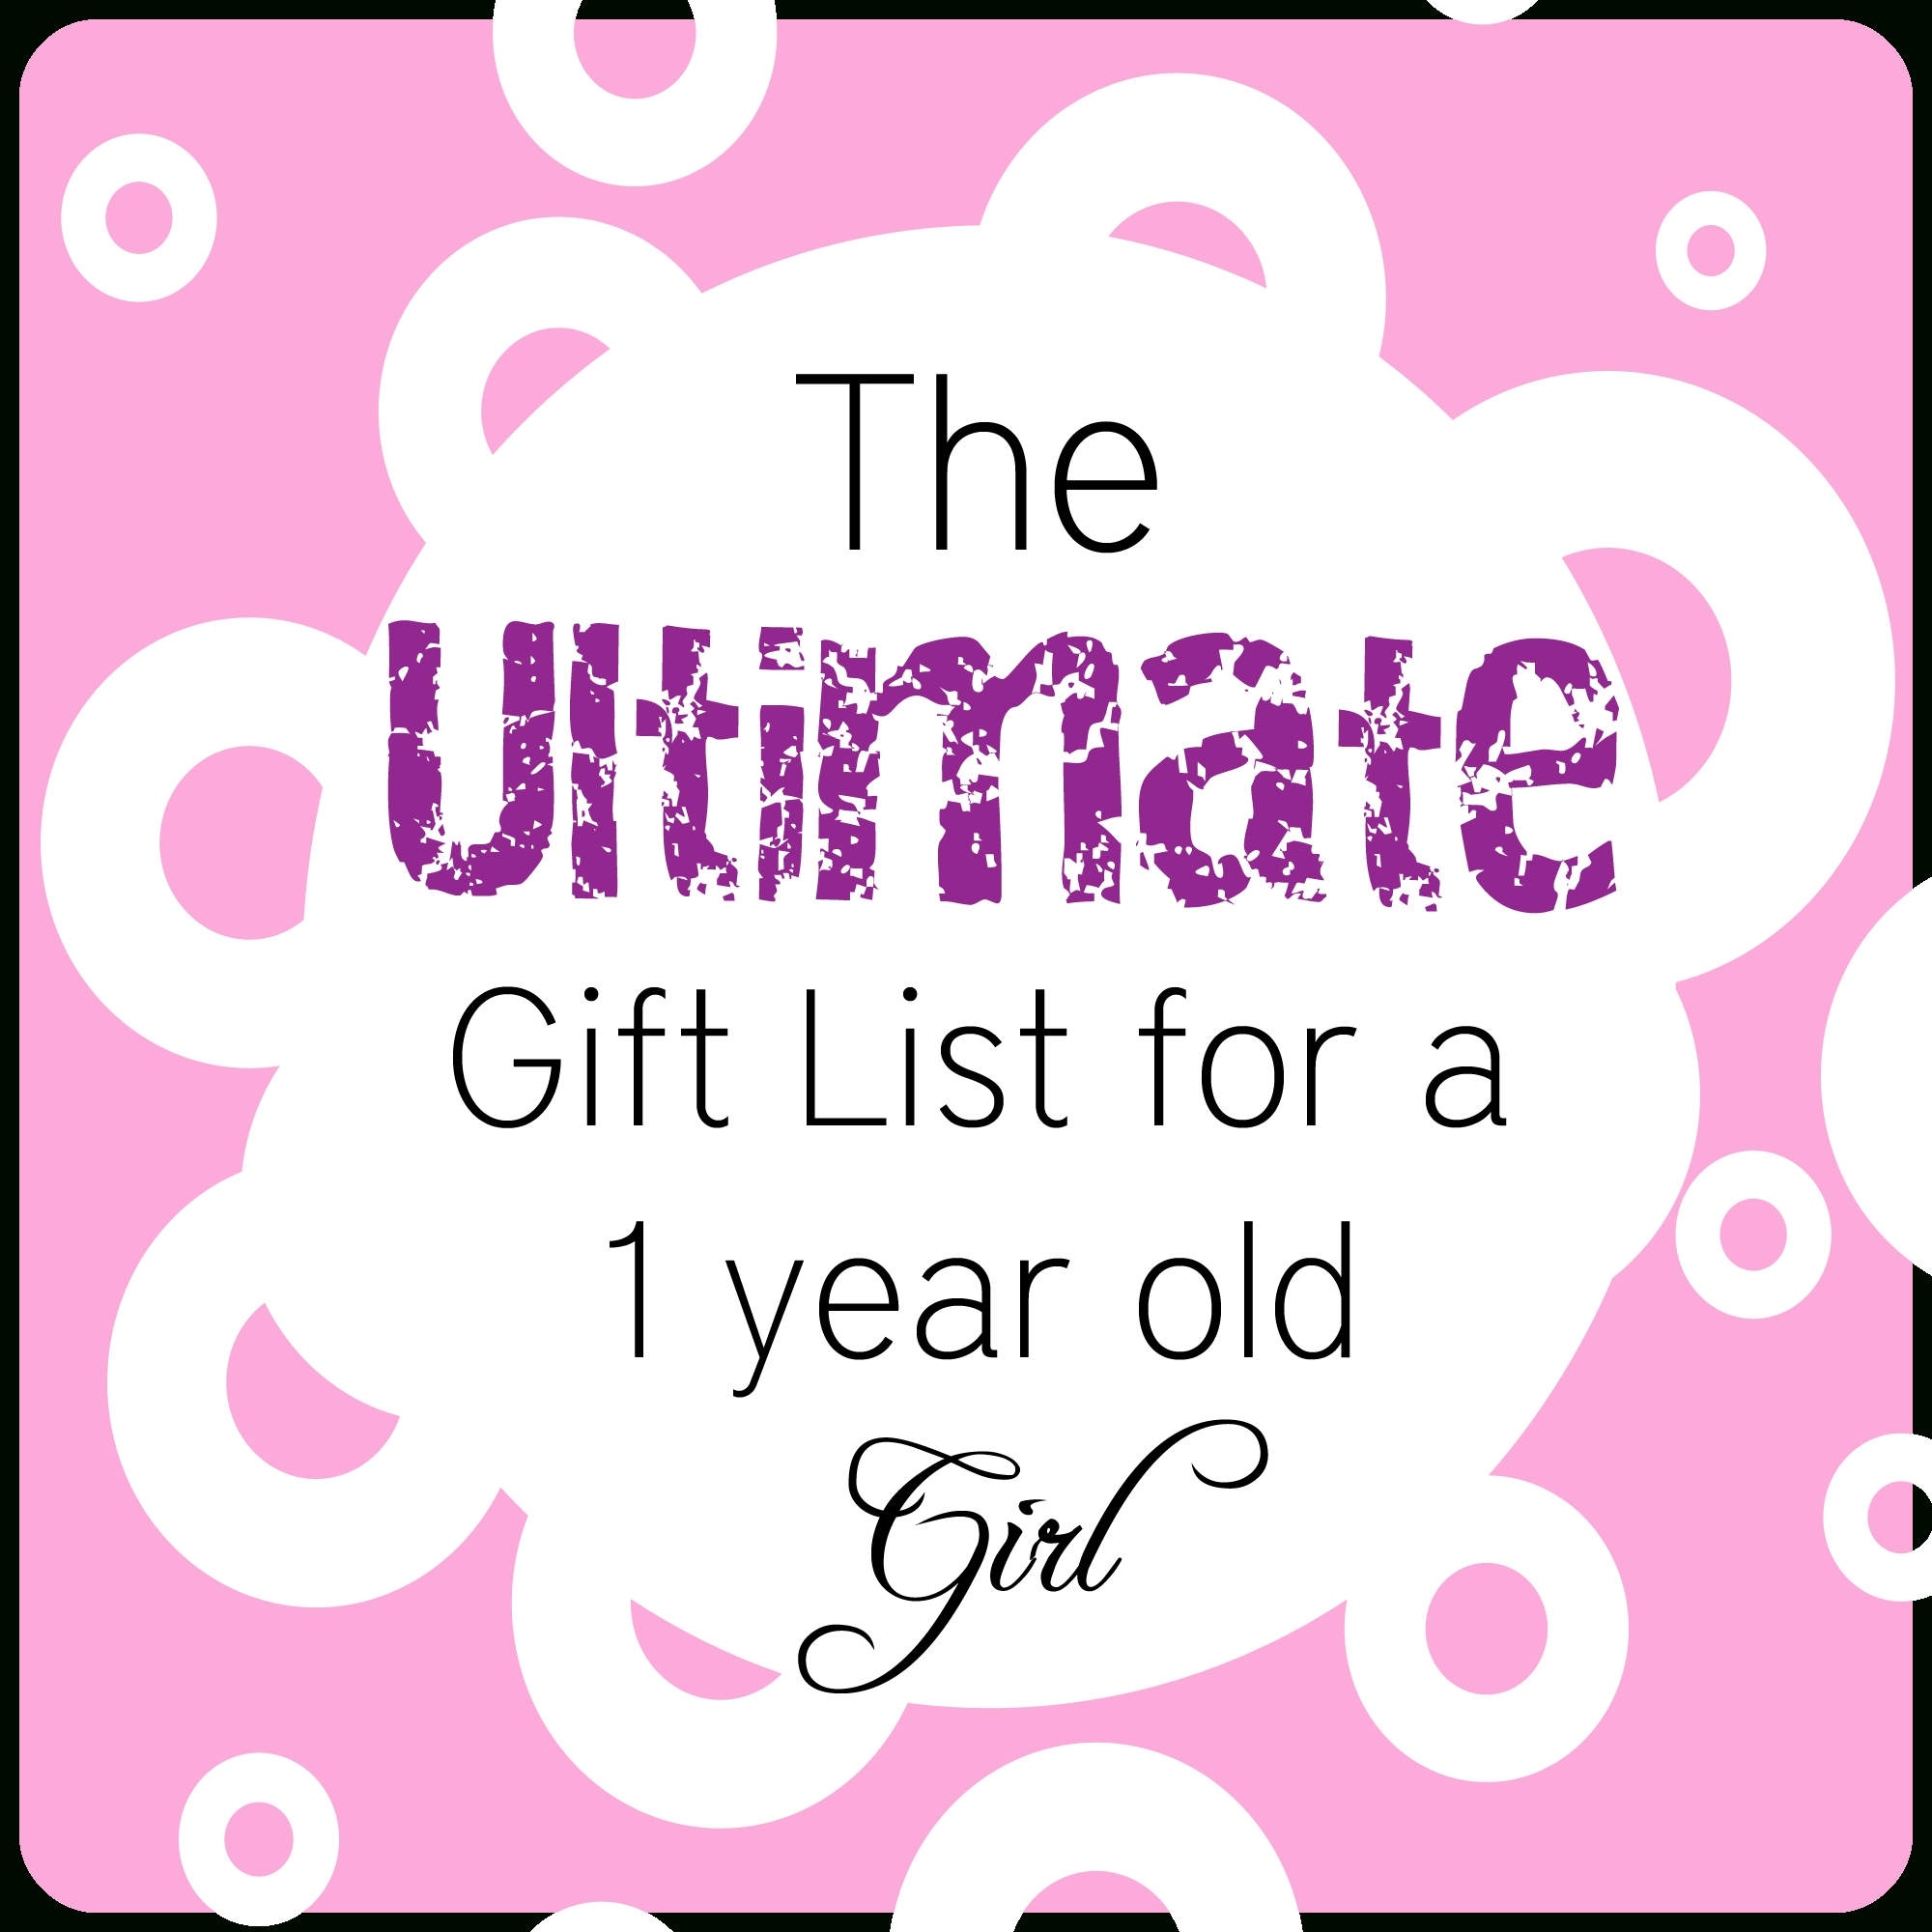 10 Pretty Gift Ideas For One Year Old Girl the ultimate gift list for a 1 year old girl e280a2 the pinning mama 7 2020